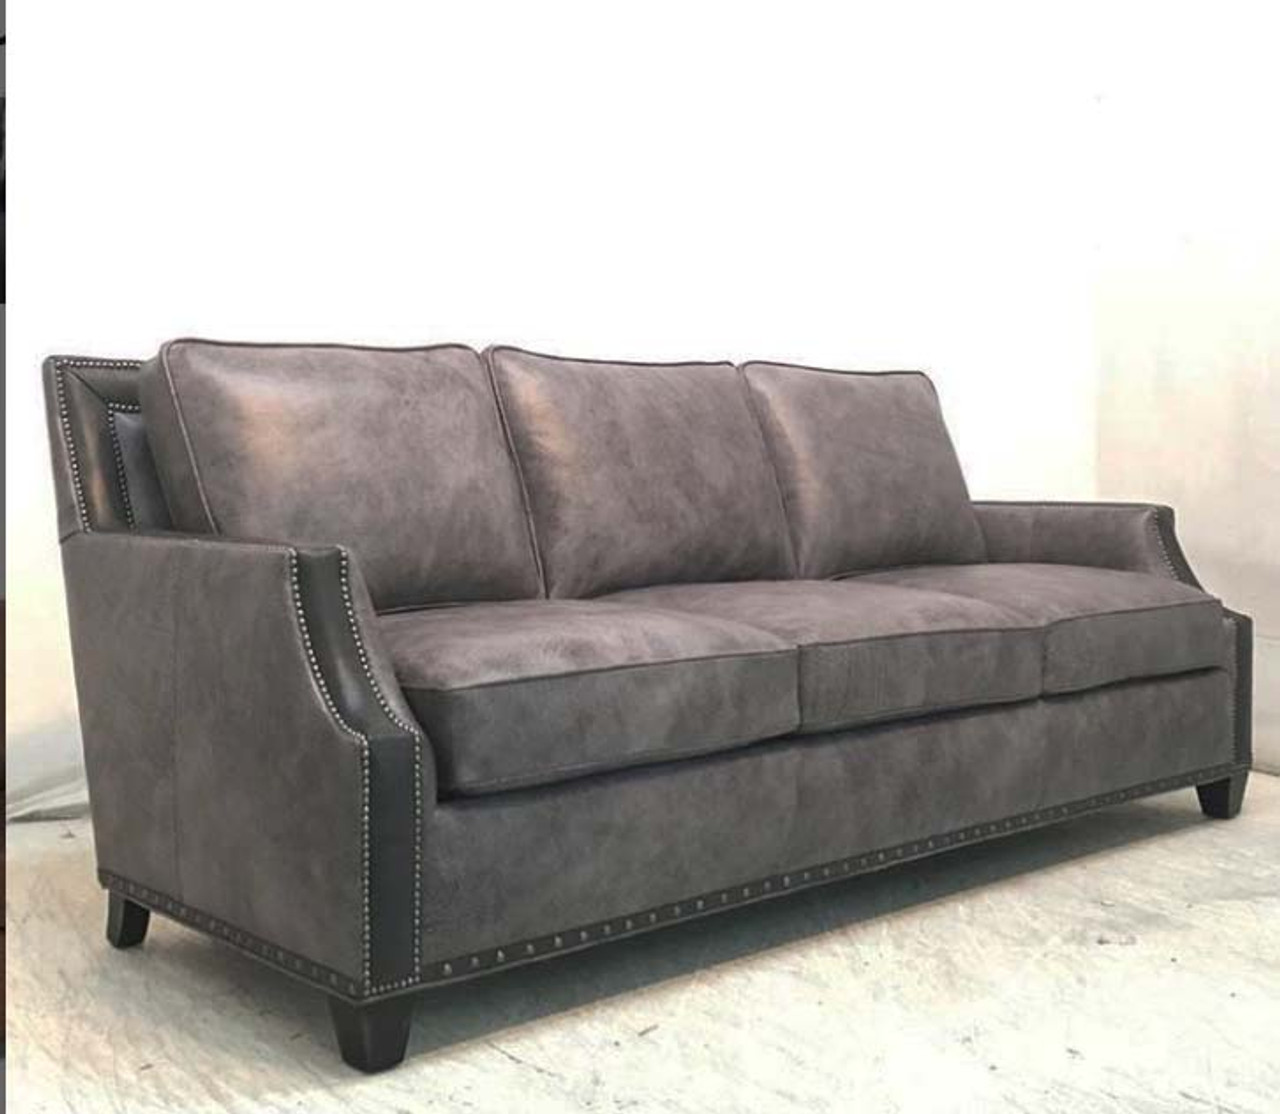 American Heritage Leather Furniture: Maddox Leather Sofa , American Heritage Custom Leather